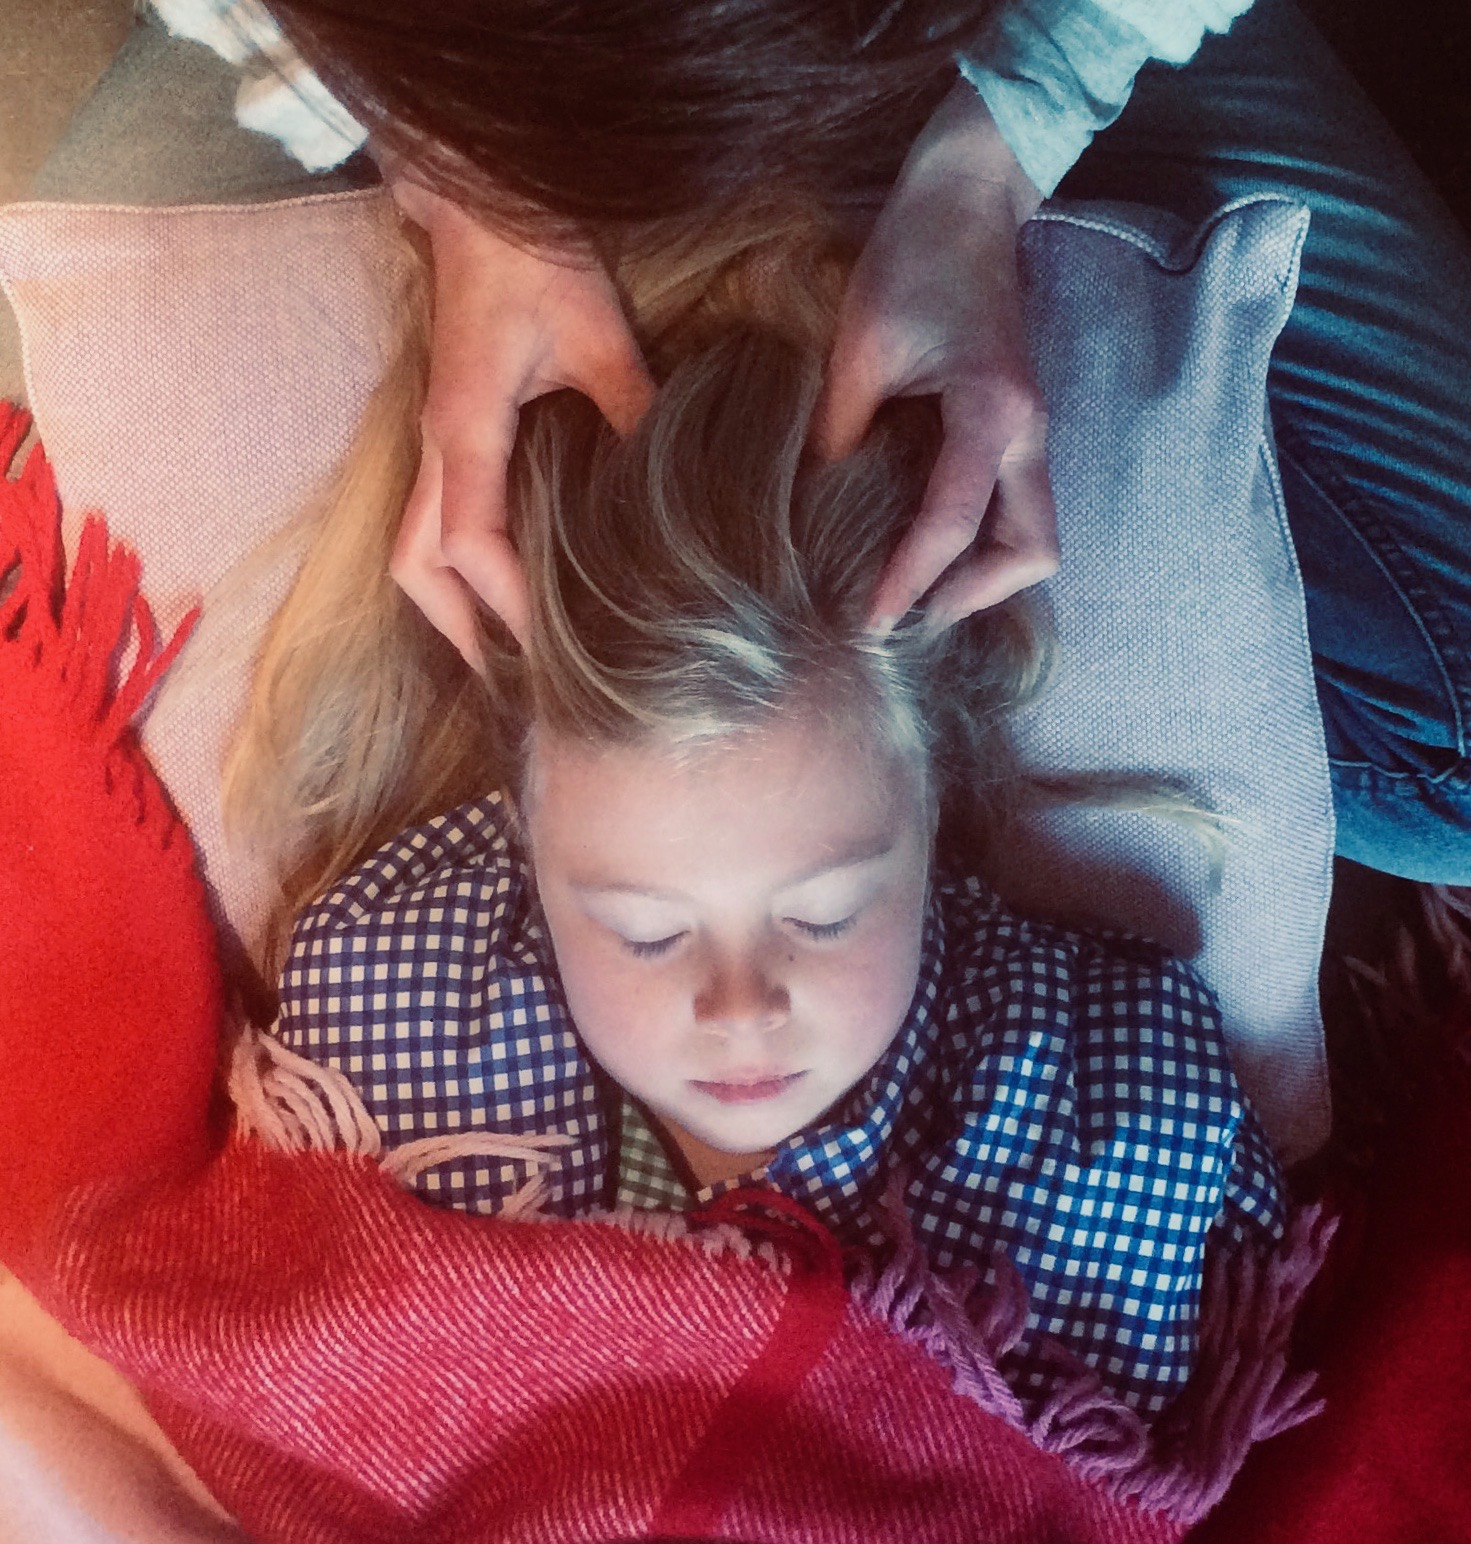 Family head massage workshop - Tuesday 30th July 20195.30pm to 7pmat Botelet FarmThis candlelit head massage workshop is for parents/carers and their children to learn together how to give a calming head massage. Costs £15 for each parent and child (£7.50 per person). Book your place on this course.